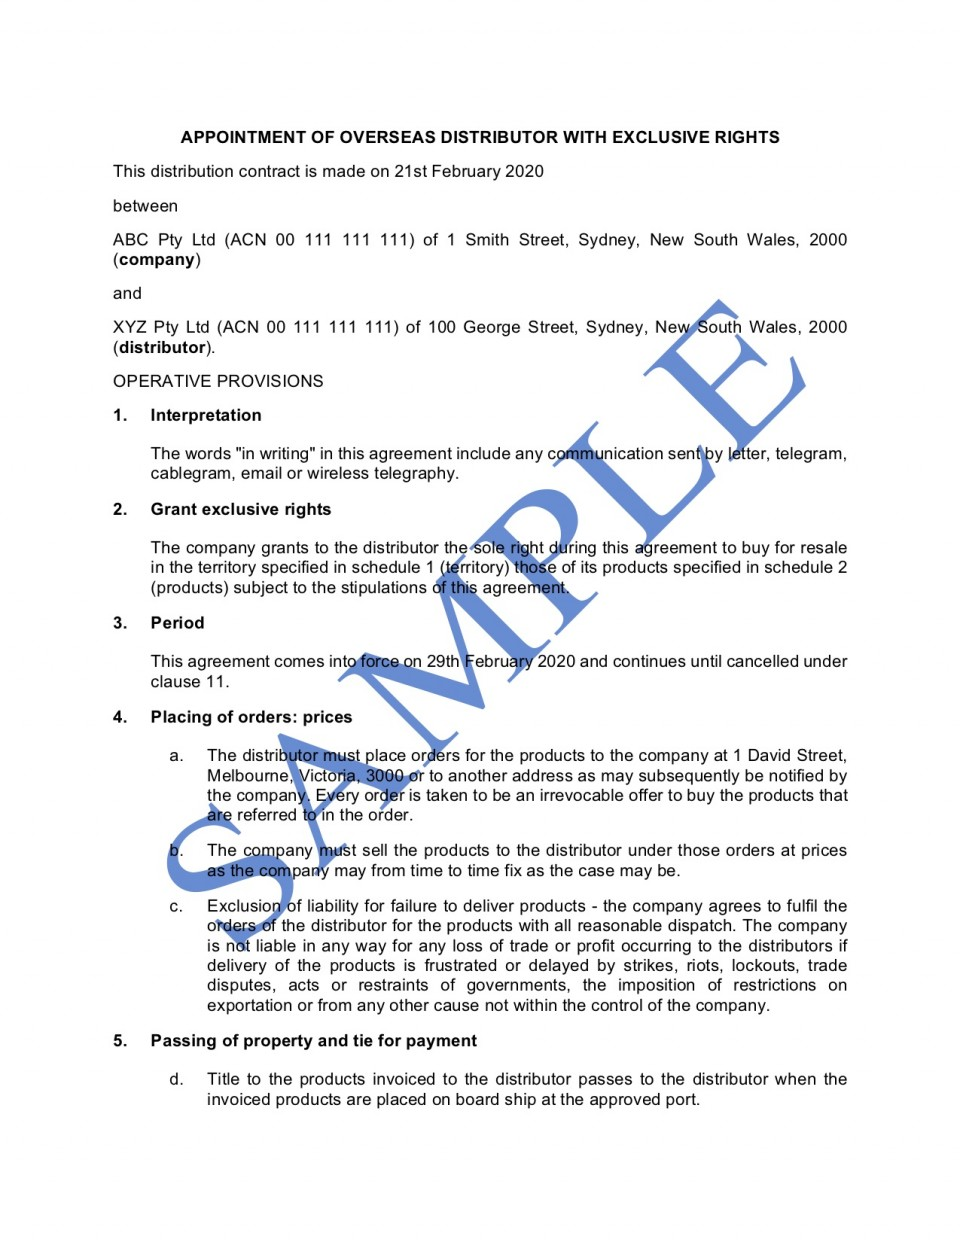 009 Phenomenal Sole Distribution Agreement Template Picture  Exclusive Distributor Free960